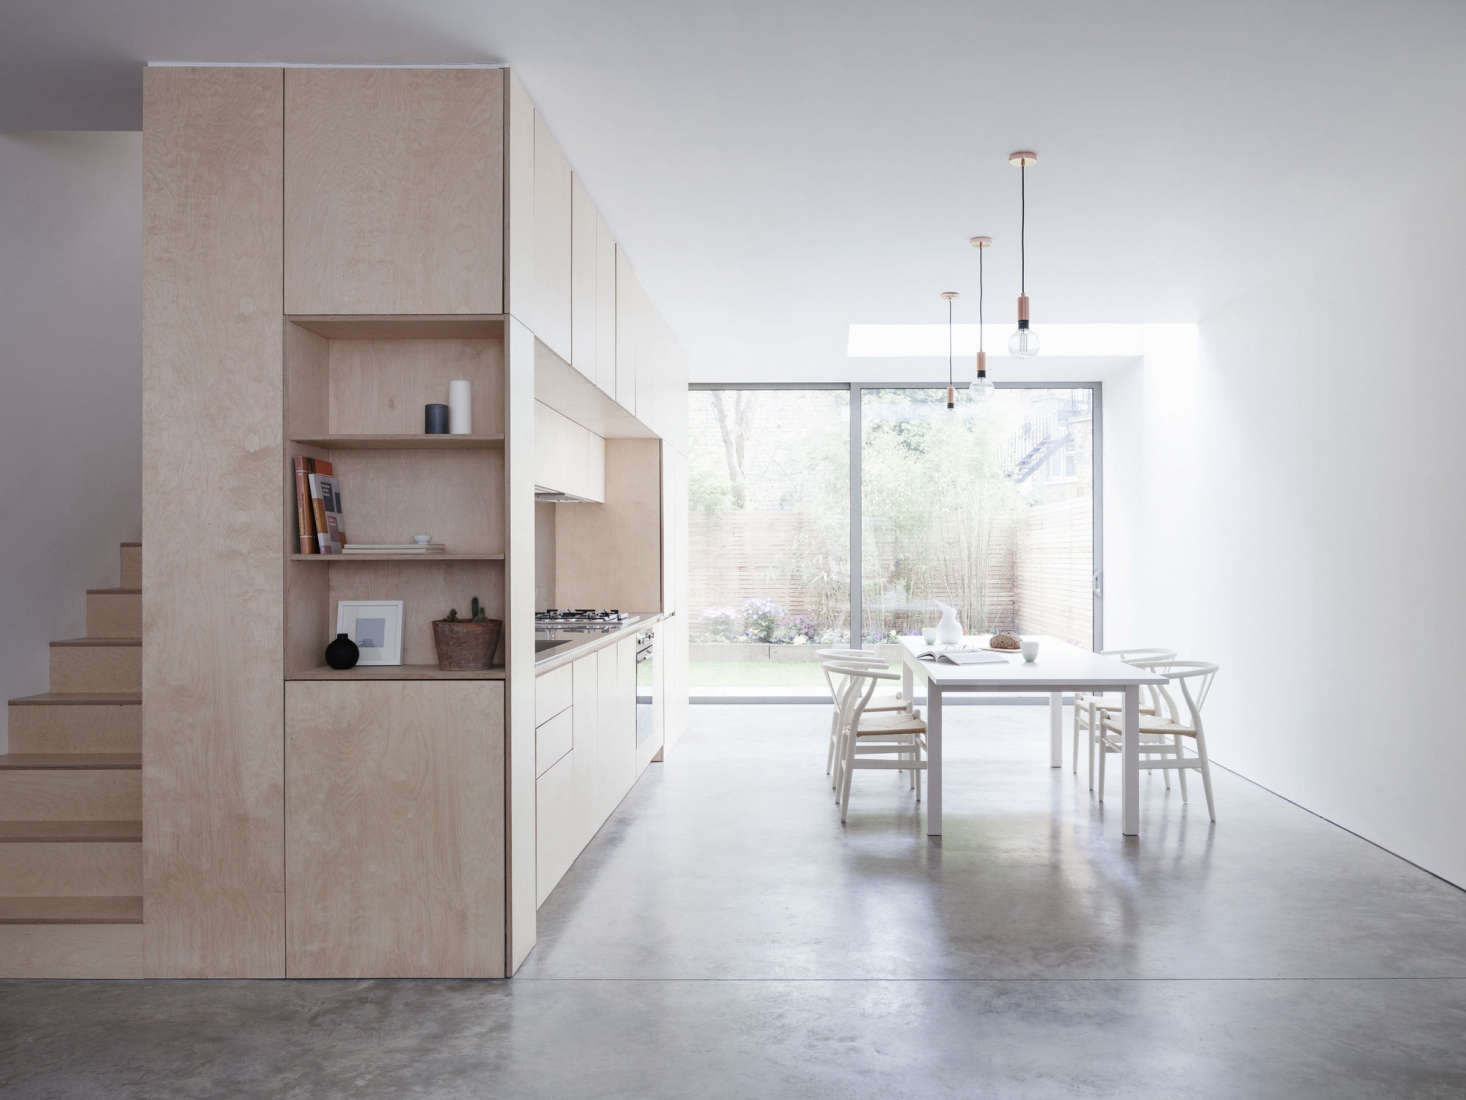 Larissa Johnston Architects designed a kitchen in a plywood frame (left) across from a large dining table surrounded by Wishbone Chairs from A London Townhouse Designed to Catch the Light.